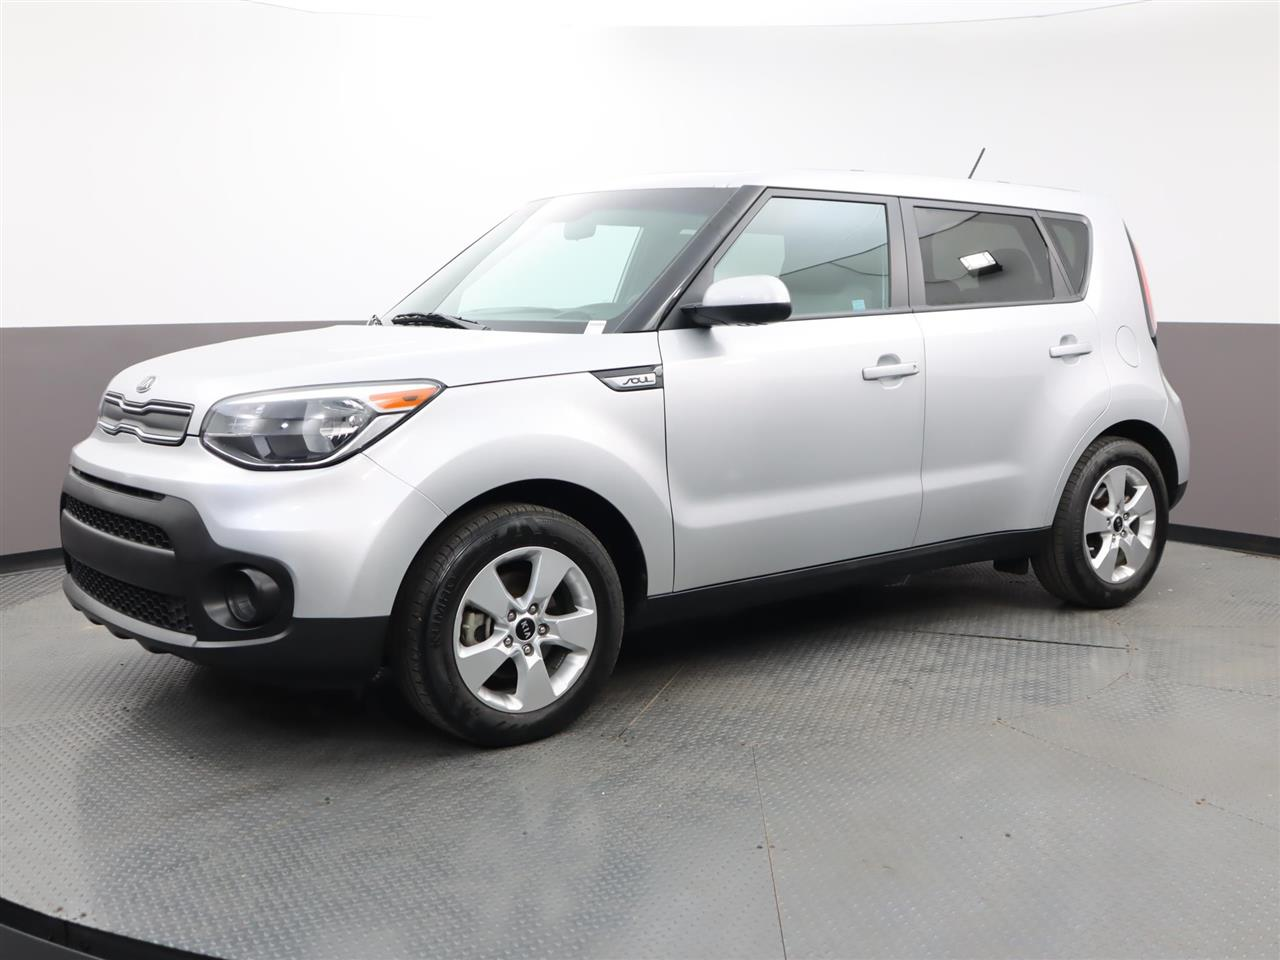 Used KIA SOUL 2018 MARGATE BASE